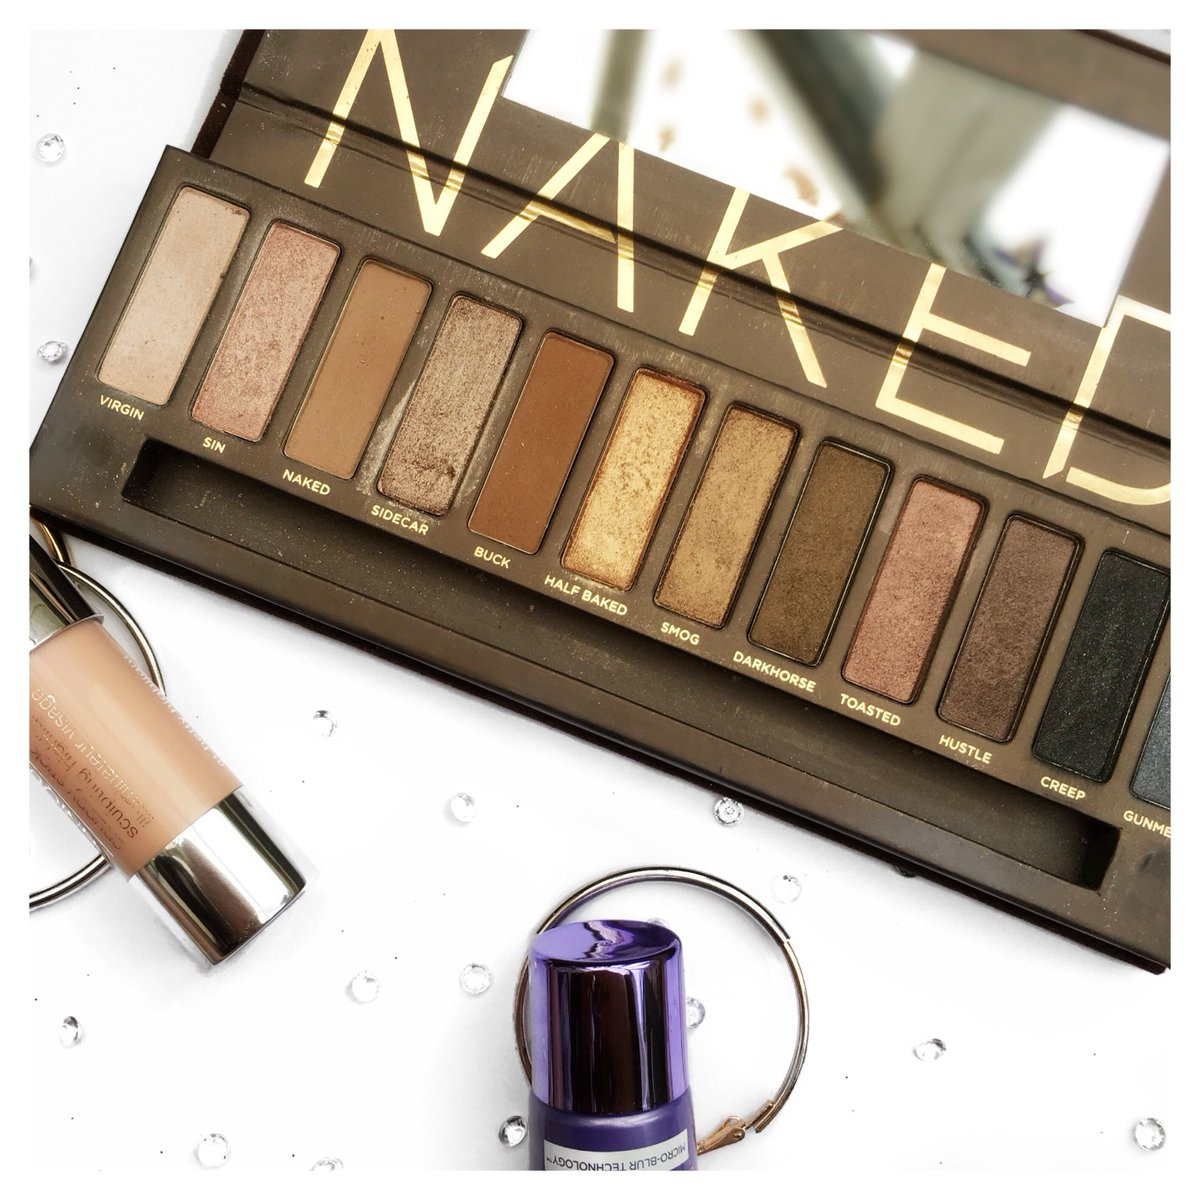 Urban Decay Naked Palette | review &amp; swatches    @BBlogRT @BloggerBees #bbloggers #lbloggers #makeup #eyeshadow #fbloggers #ukbloggers<br>http://pic.twitter.com/ZY2JhVquW7